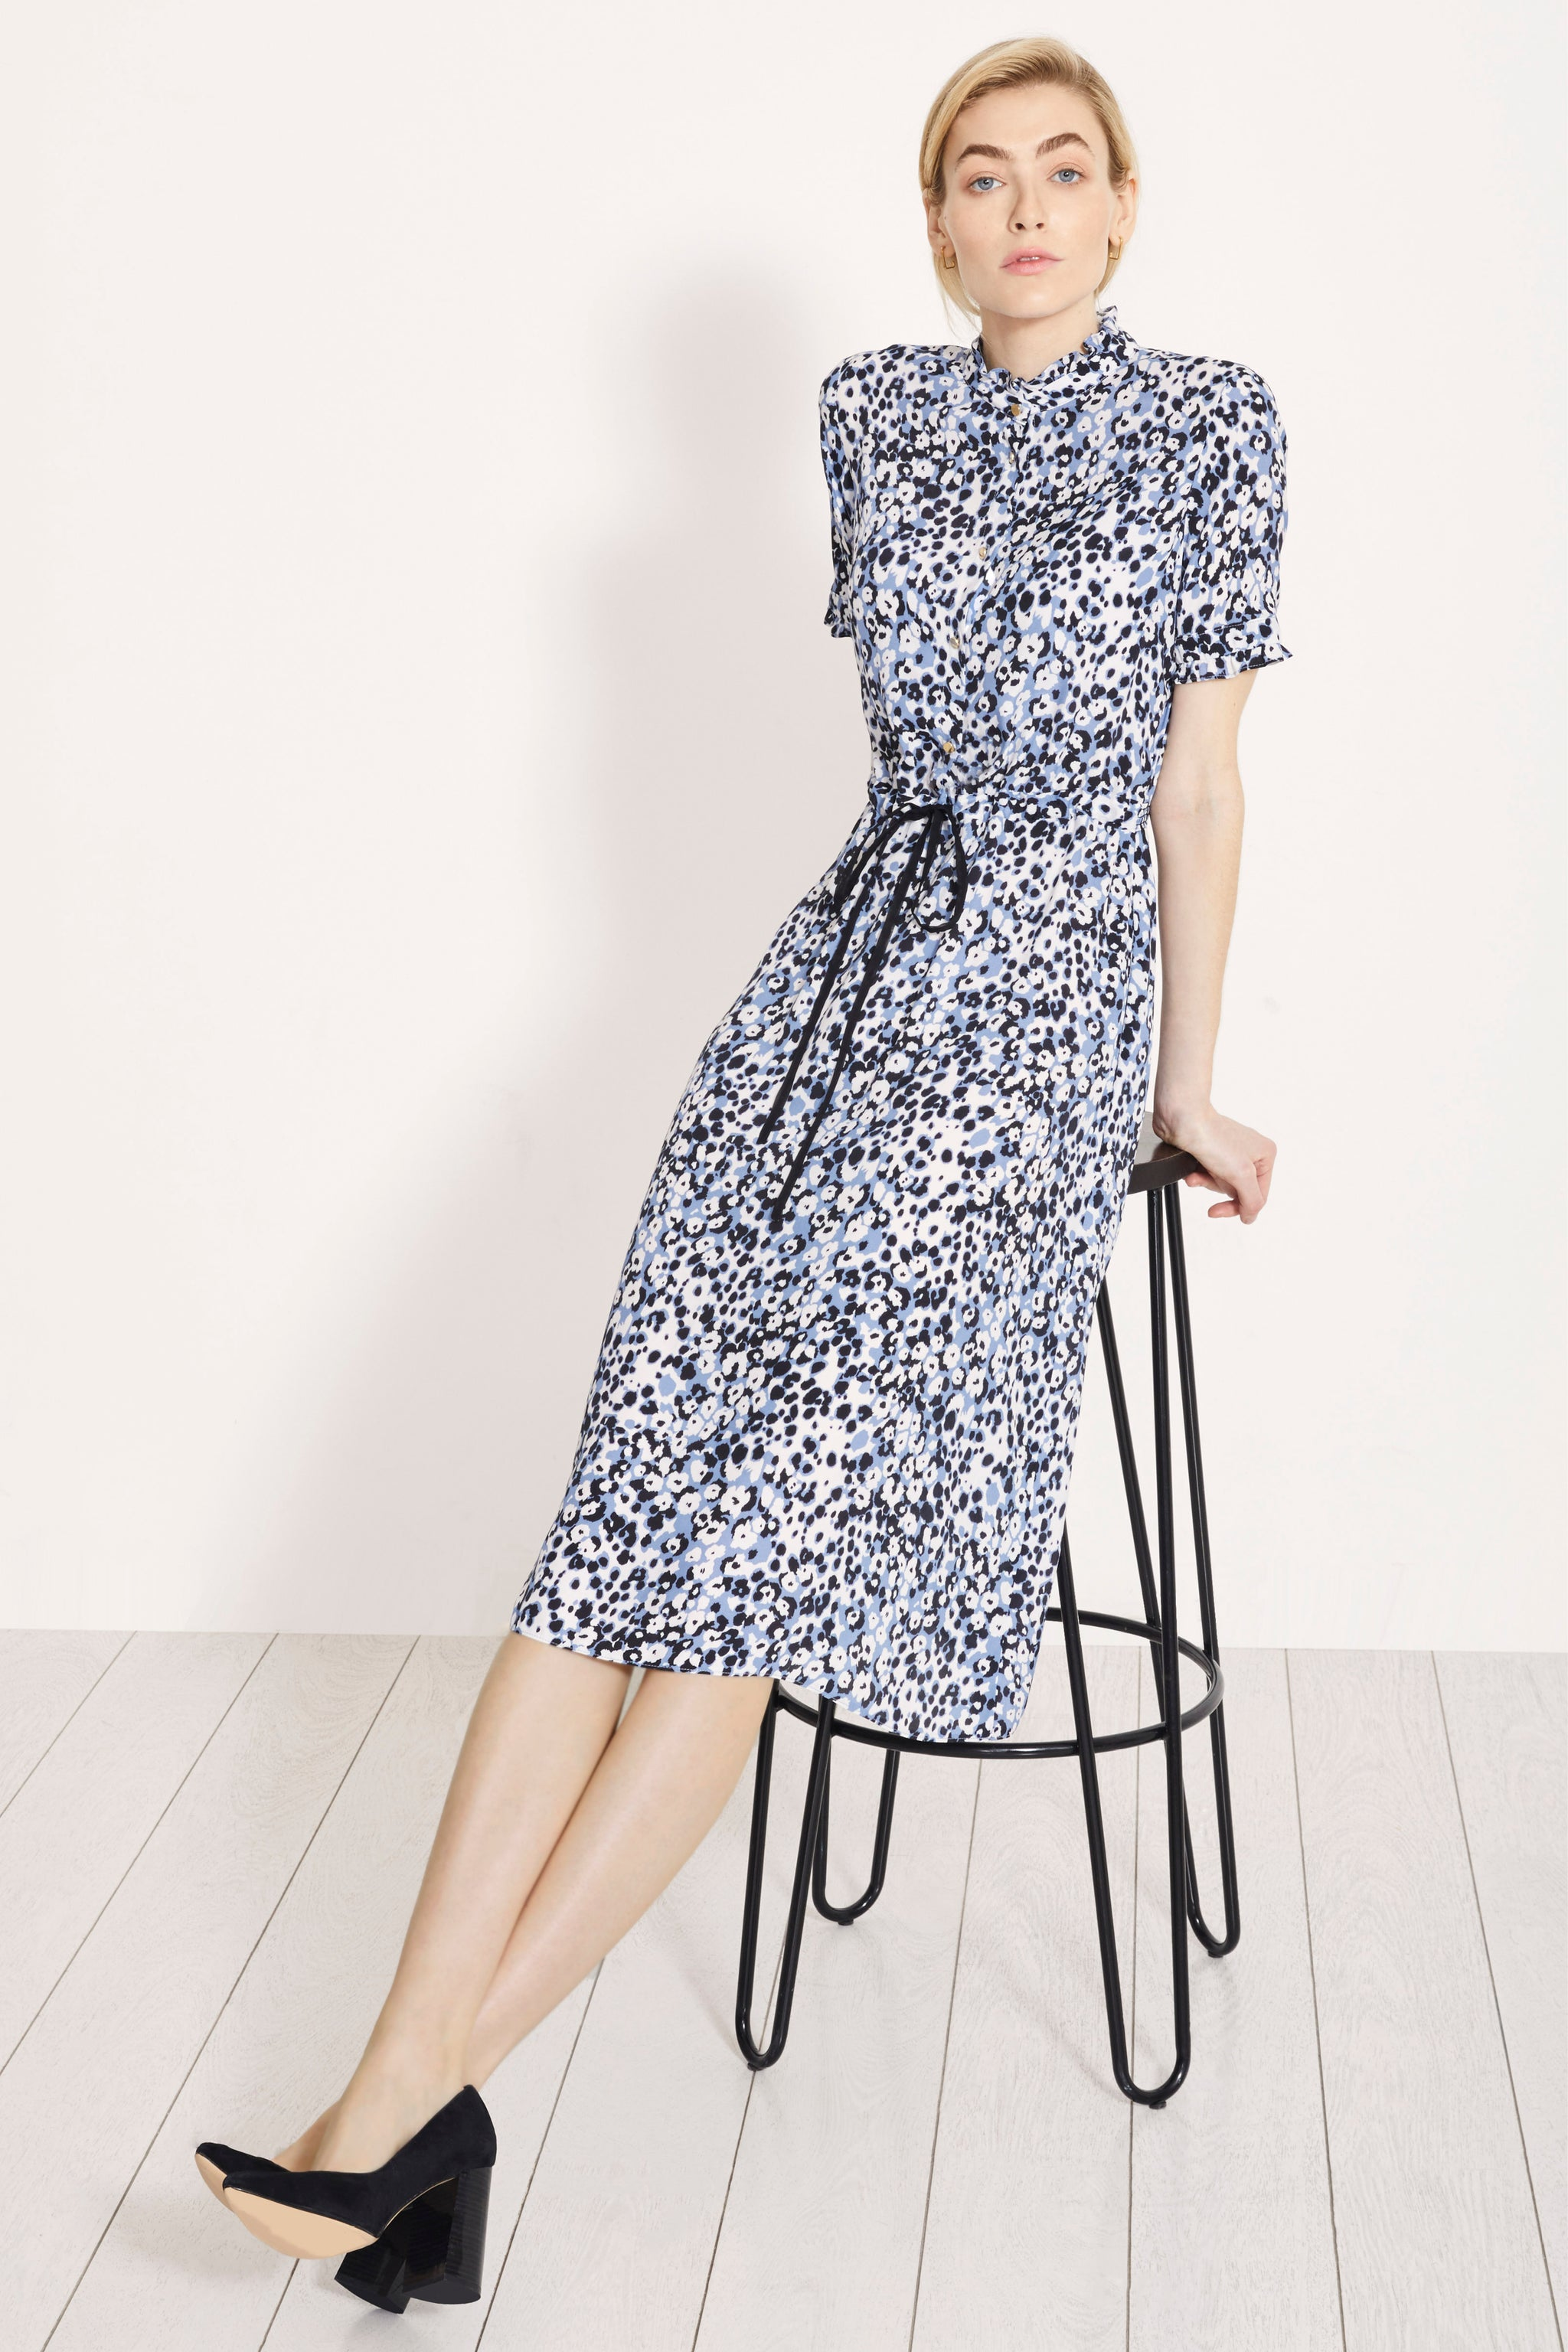 Canterbury Turner Blue Spot Print Dress